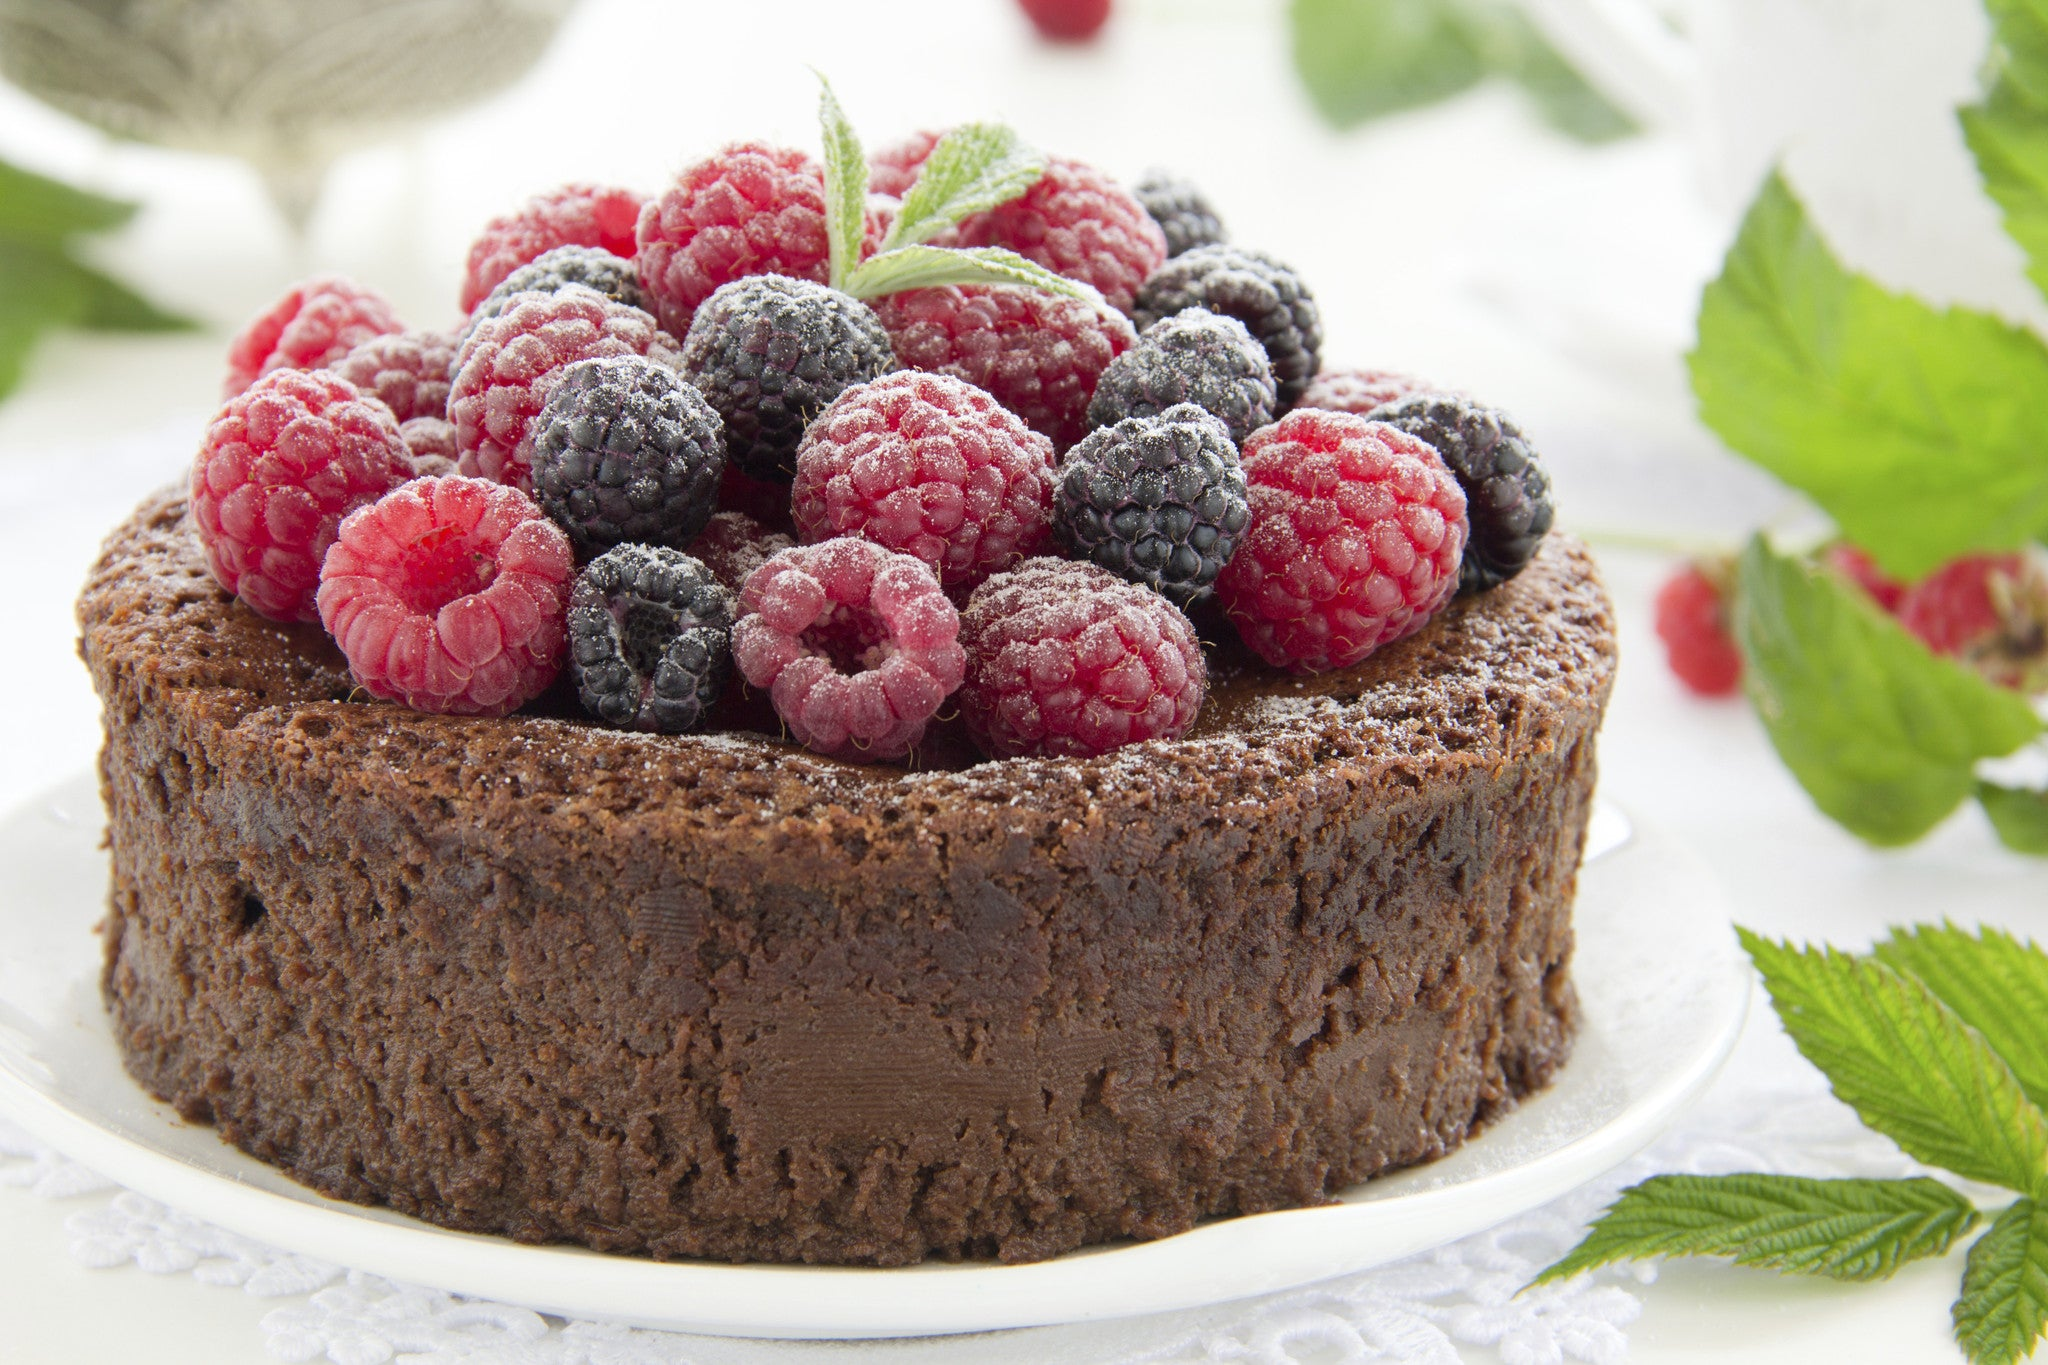 Easy Gluten-Free & Flourless Chocolate Cake